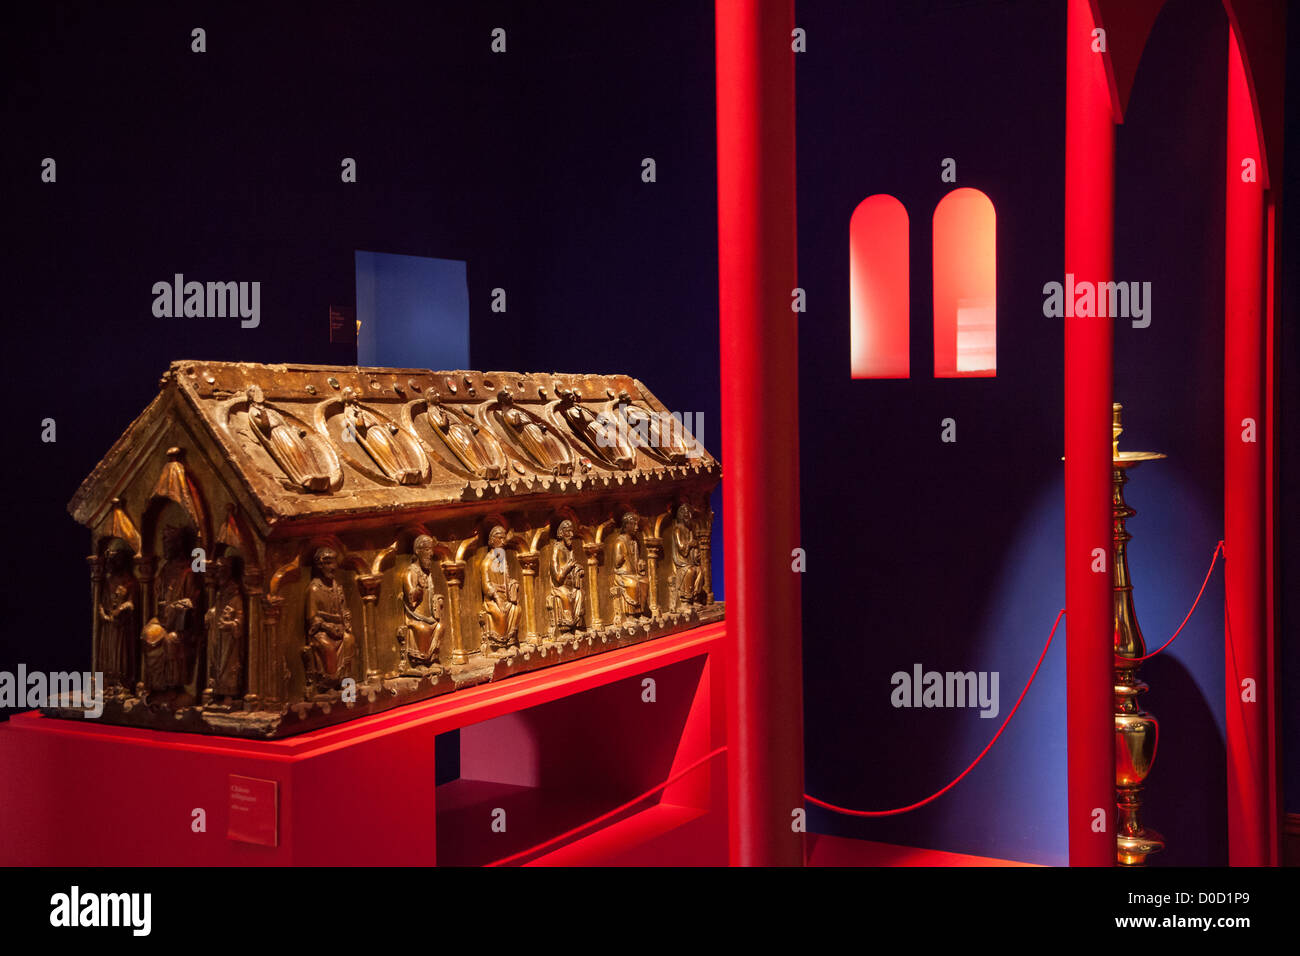 13TH CENTURY RELIQUARY IN GILDED WOOD CABINET OF SACRED ART CHATEAU DE LANGEAIS INDRE-ET-LOIRE (37) FRANCE - Stock Image